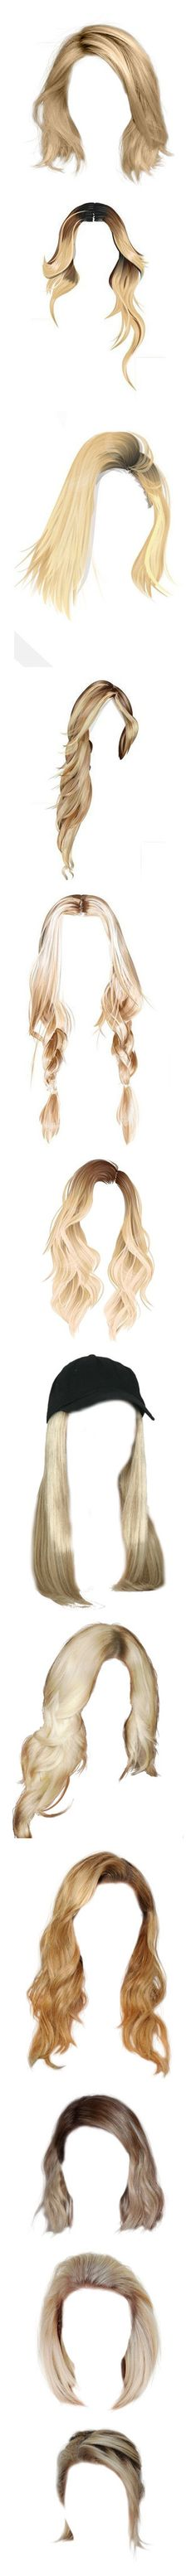 """""""New Hair"""" by ana-banana ❤ liked on Polyvore featuring hair, hairstyles, doll hair, wigs, accessories, hair accessories, beauty products, haircare, hair styling tools and blonde hair"""